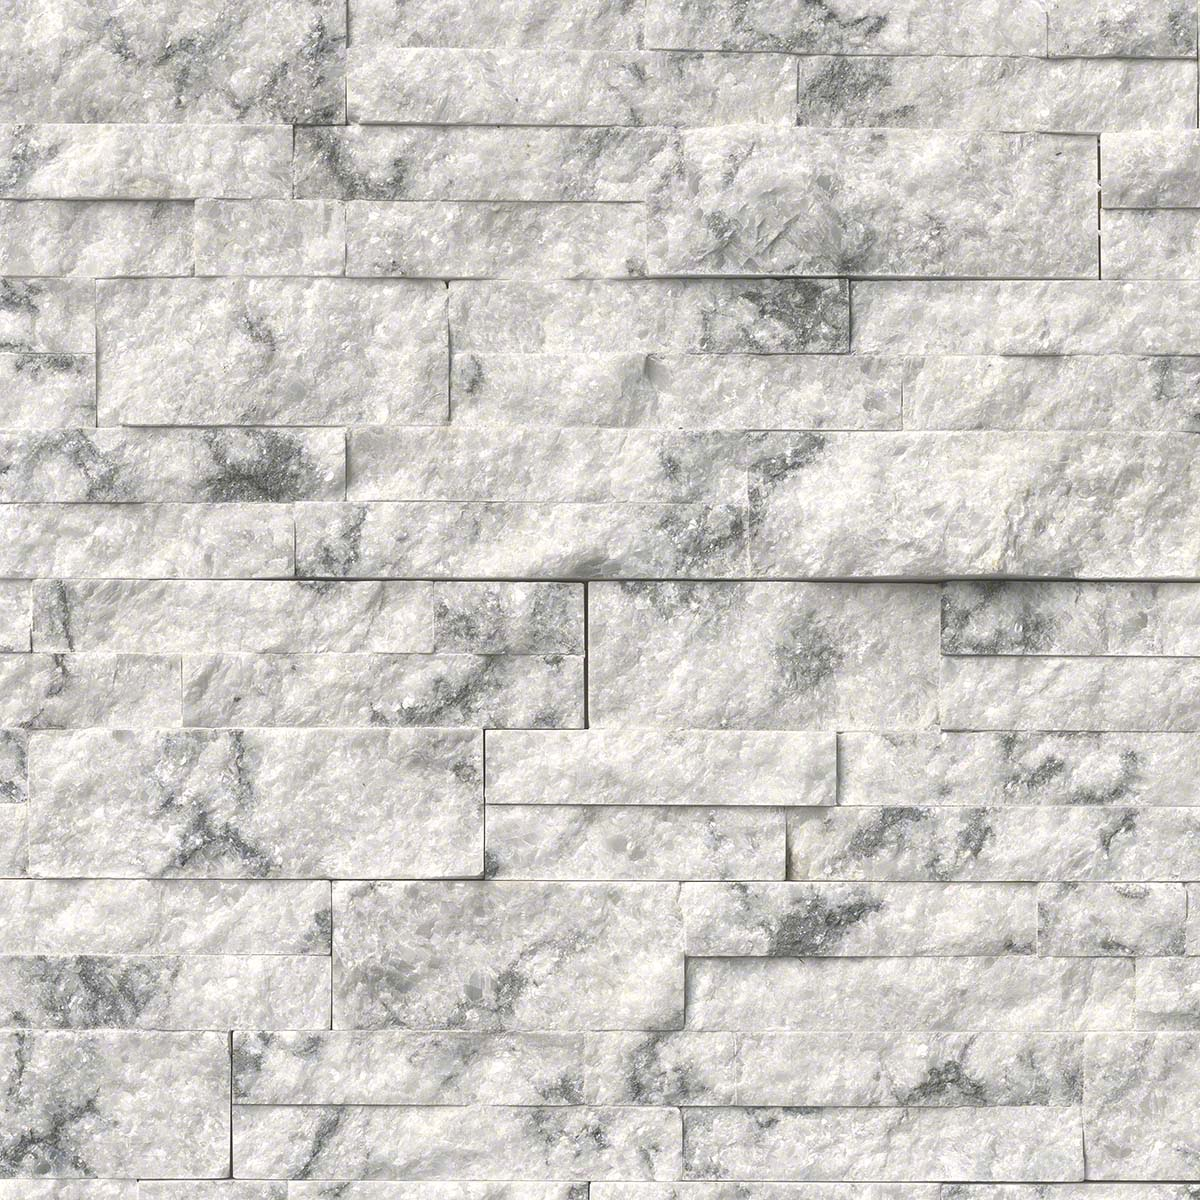 Ledger Panels - M S International | Norristown Brick